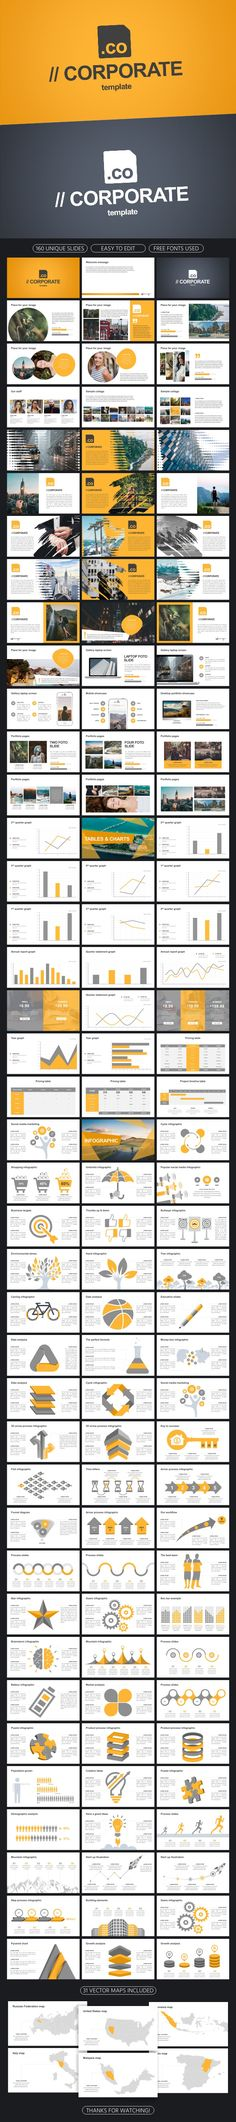 Corporate Keynote Template — Keynote KEY #animated #analysis • Available here → https://graphicriver.net/item/corporate-keynote-template/19942560?ref=pxcr